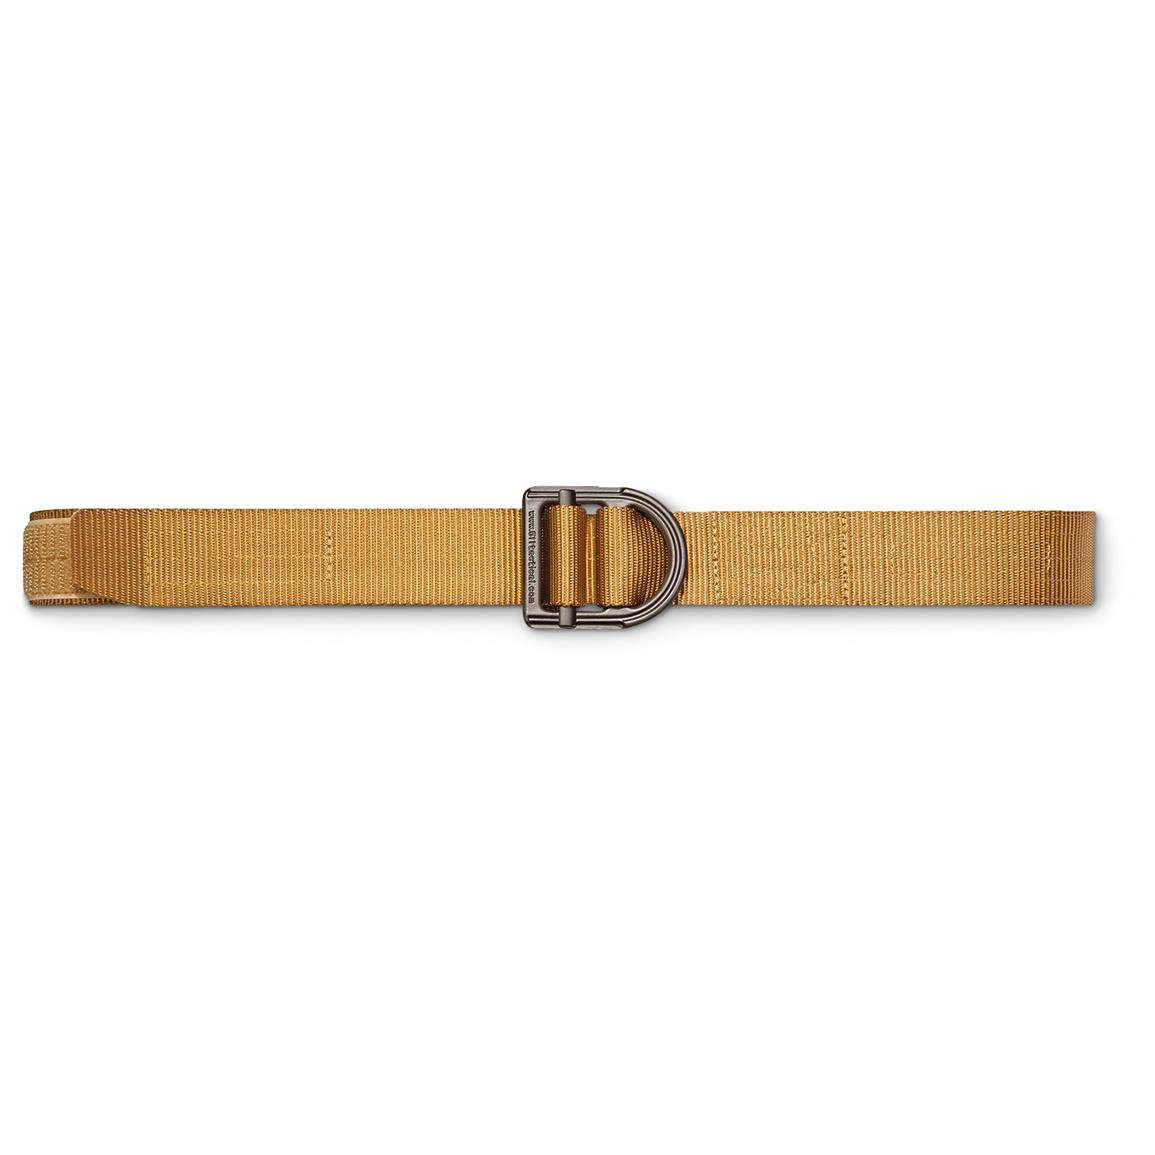 "5.11 Tactical 1 1/2"" Wide Trainer Belt, Coyote Brown"